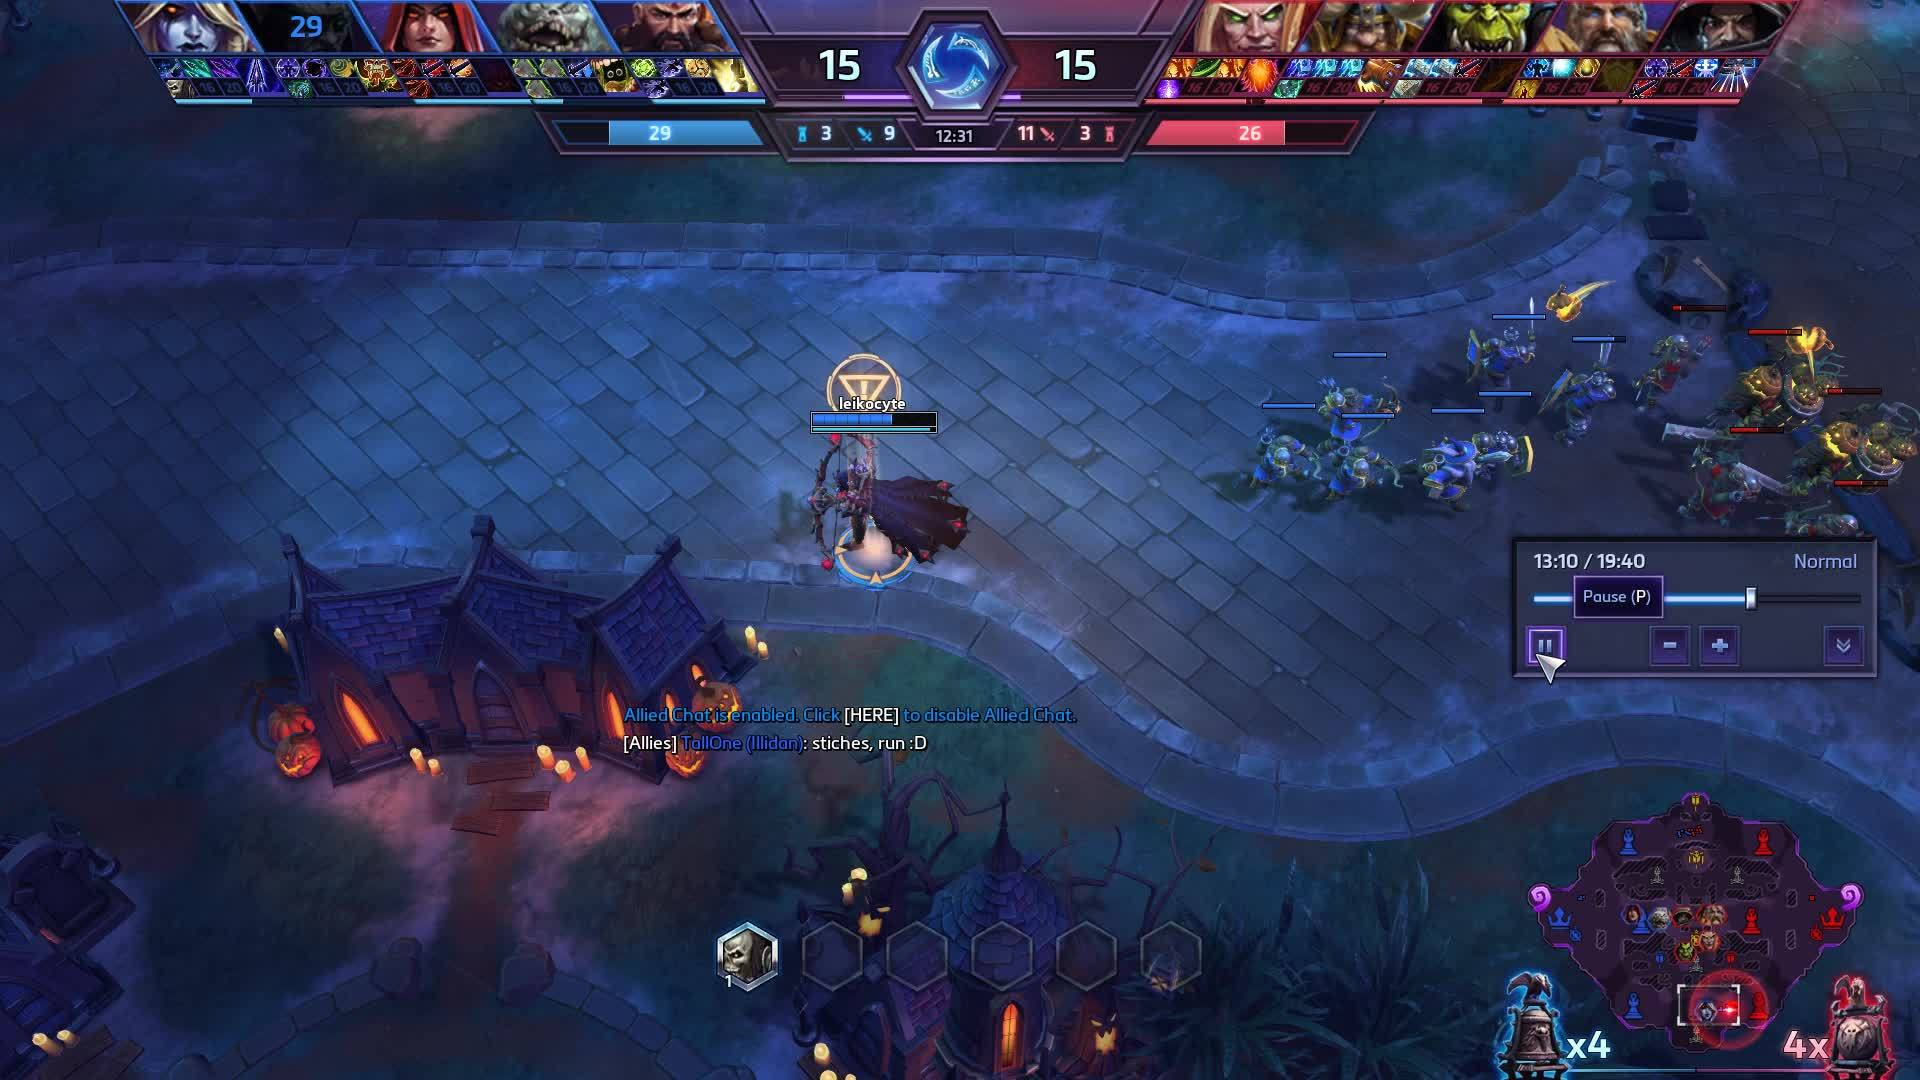 heroesofthestorm, Can't touch this. GIFs